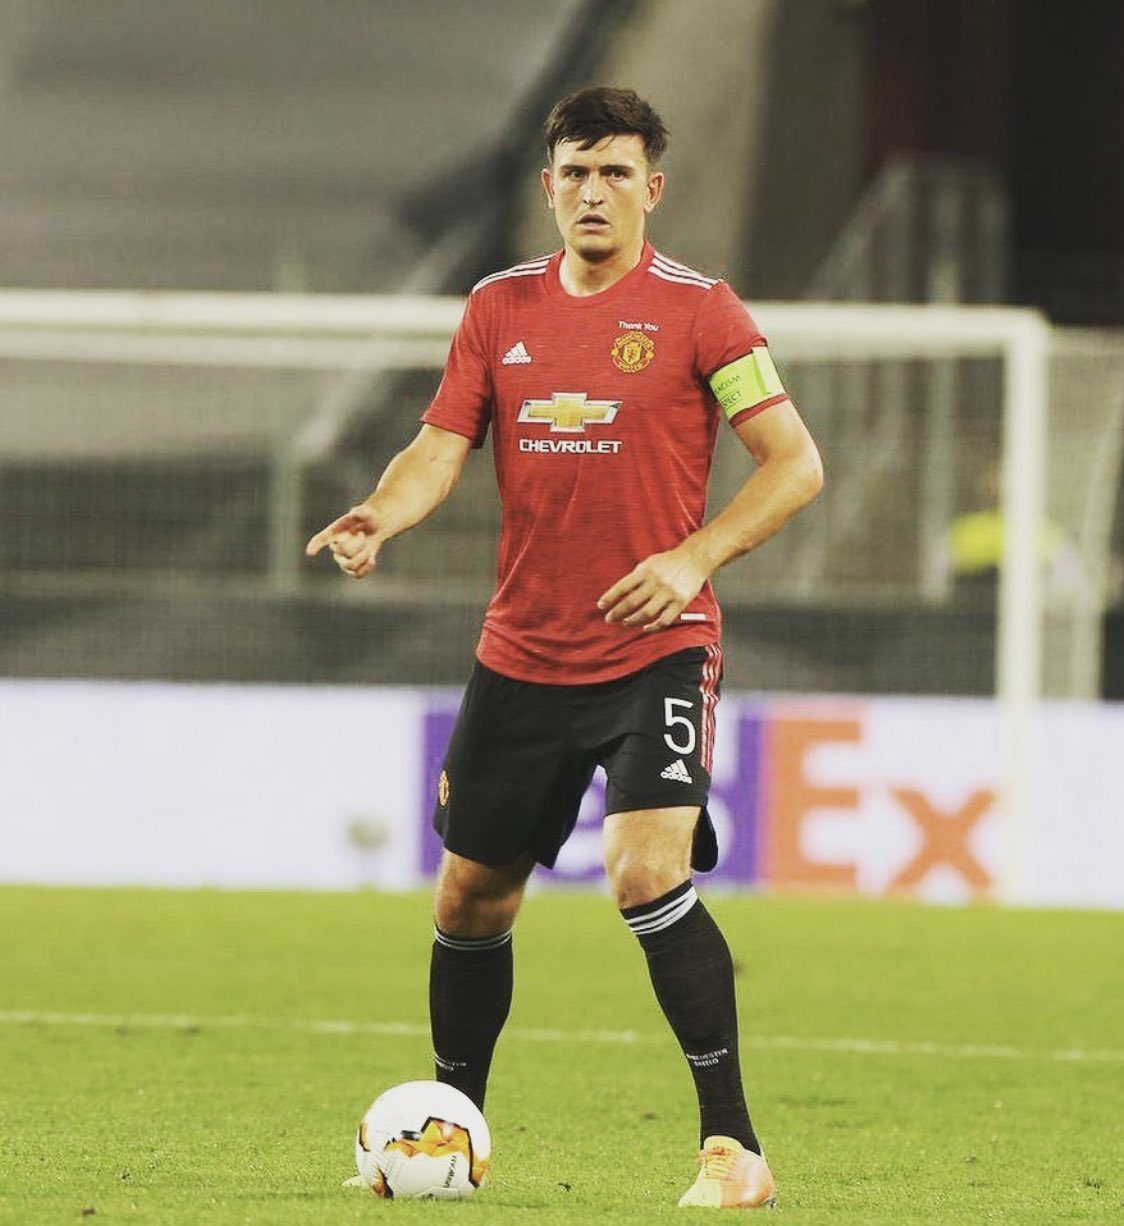 Harry Maguire: The whirlwind assault  case of the Manchester United captain, The Manc